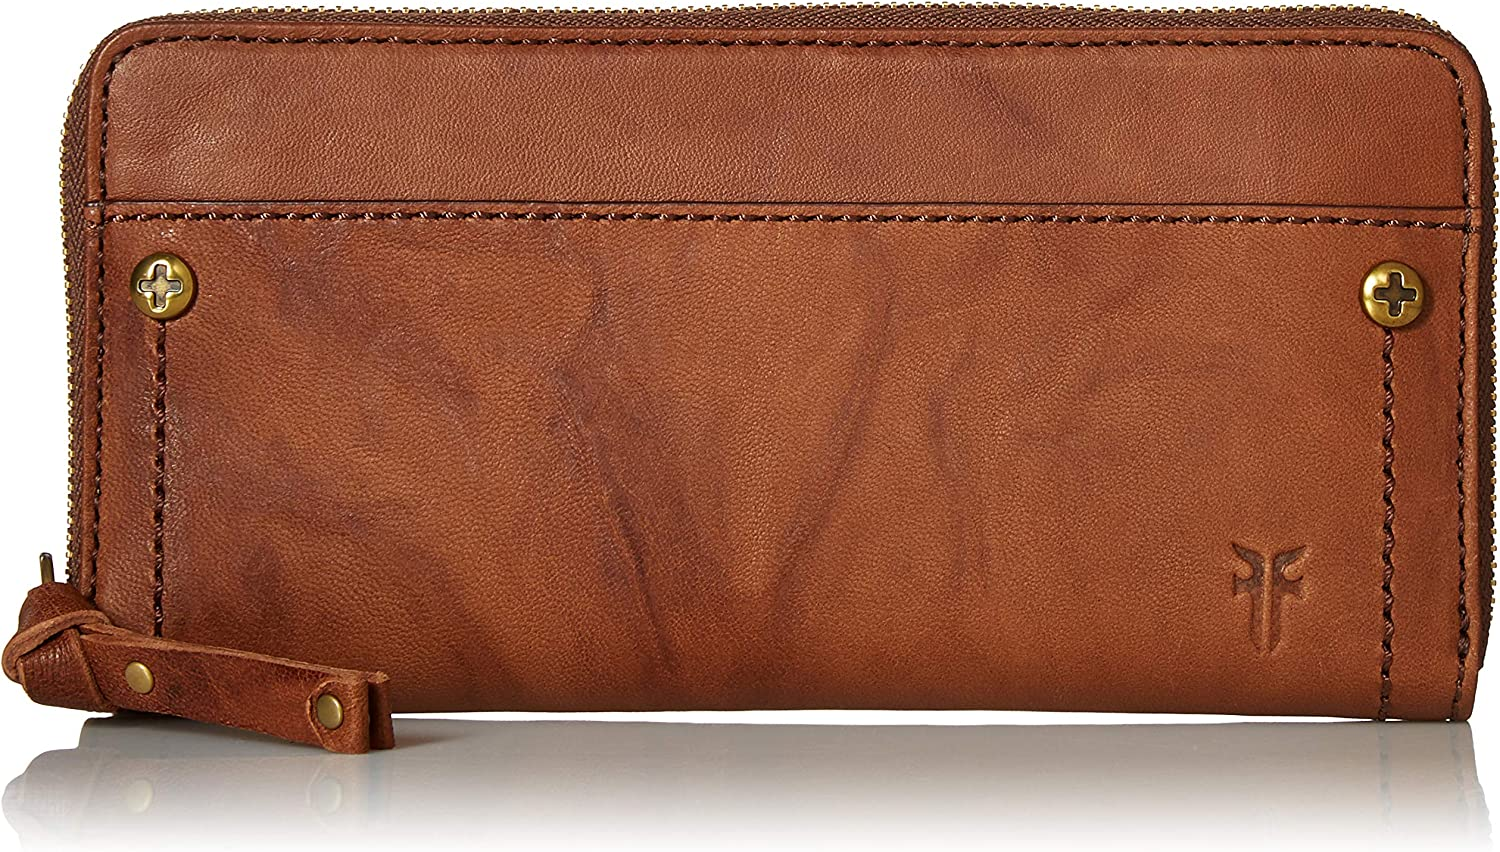 FRYE Demi Zip Around Leather Wallet